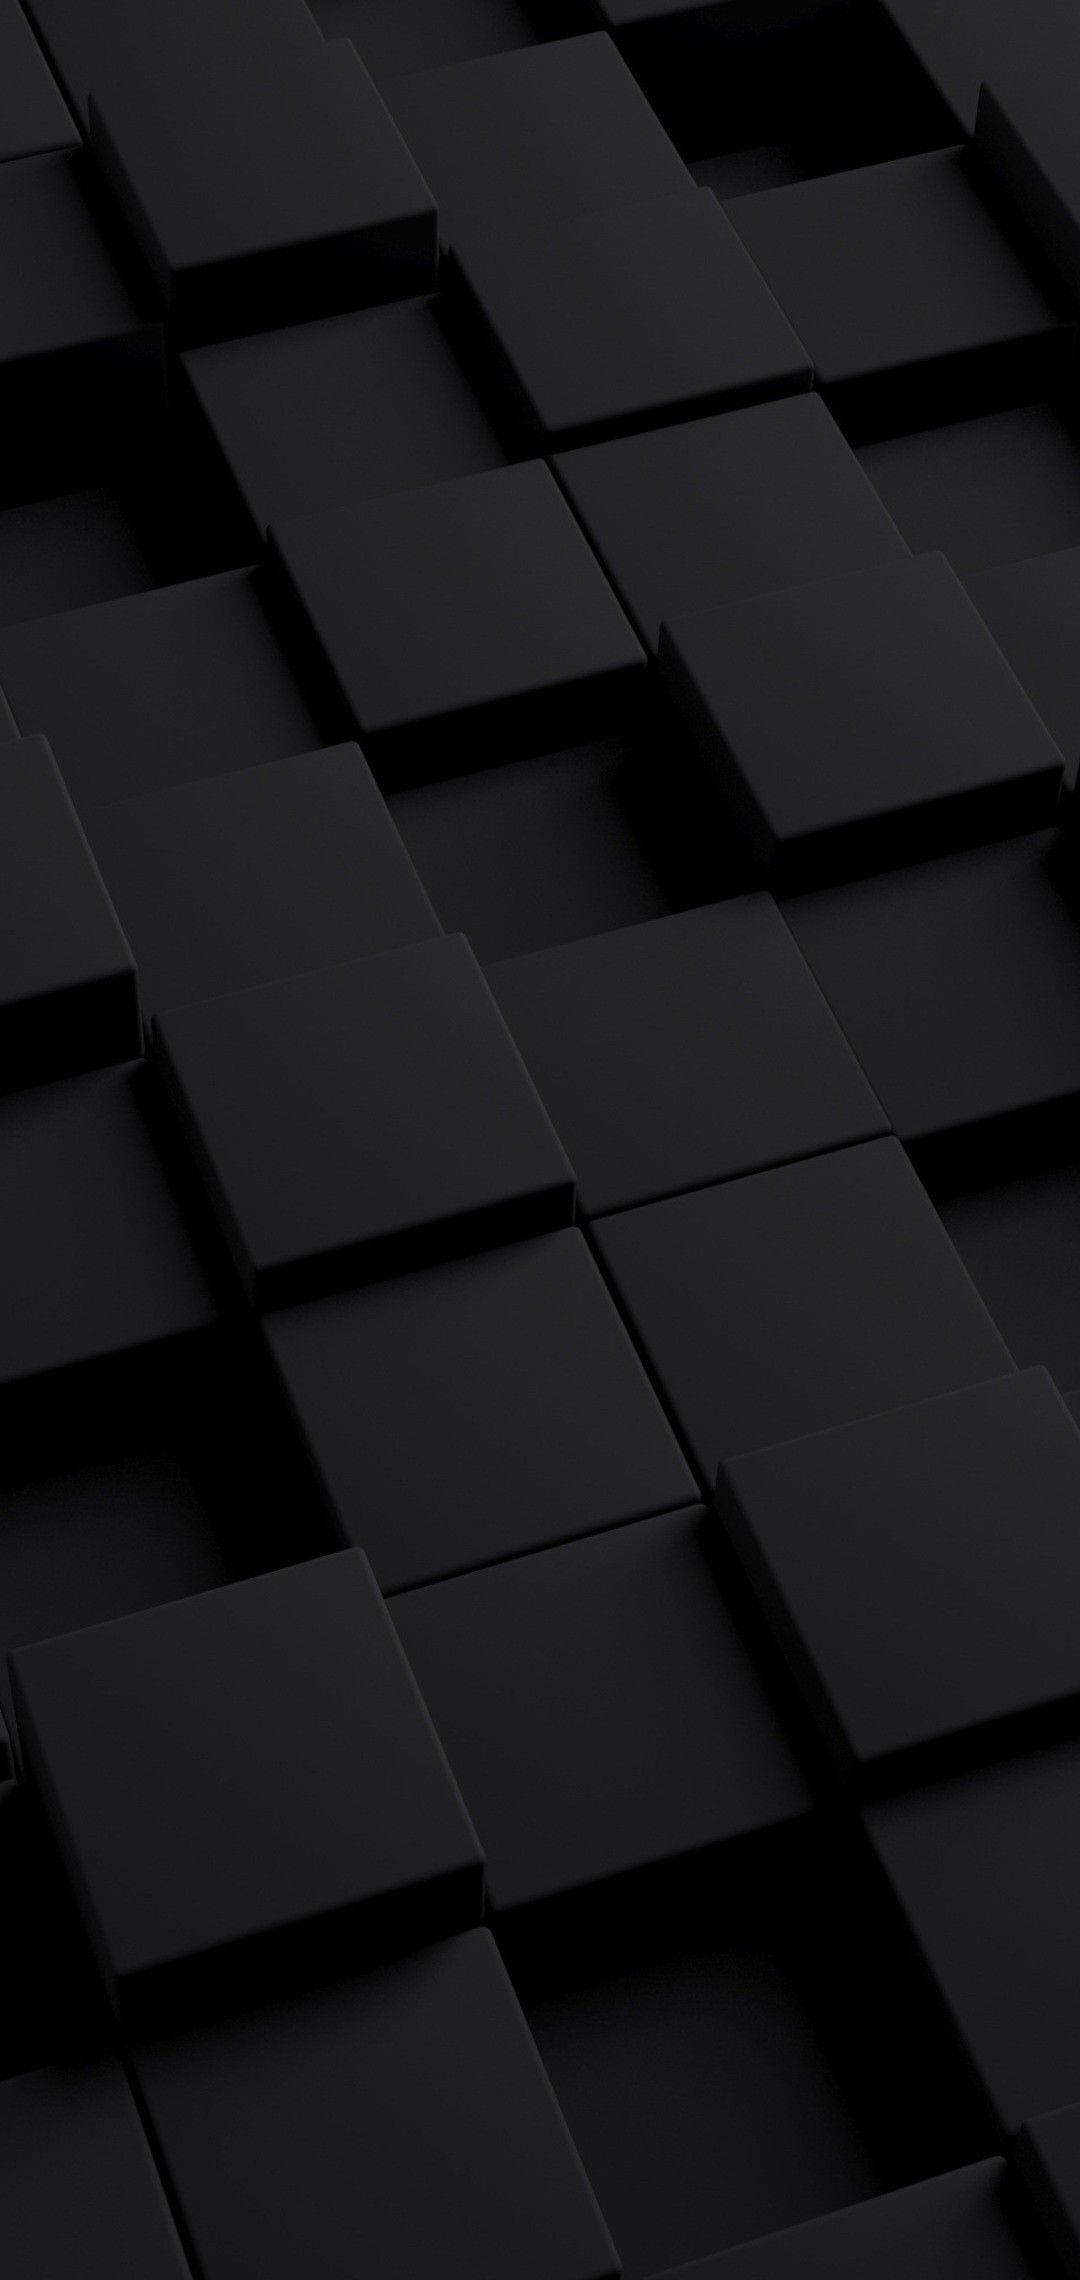 Black Wallpaper For Oneplus 6 Artistic Joyful